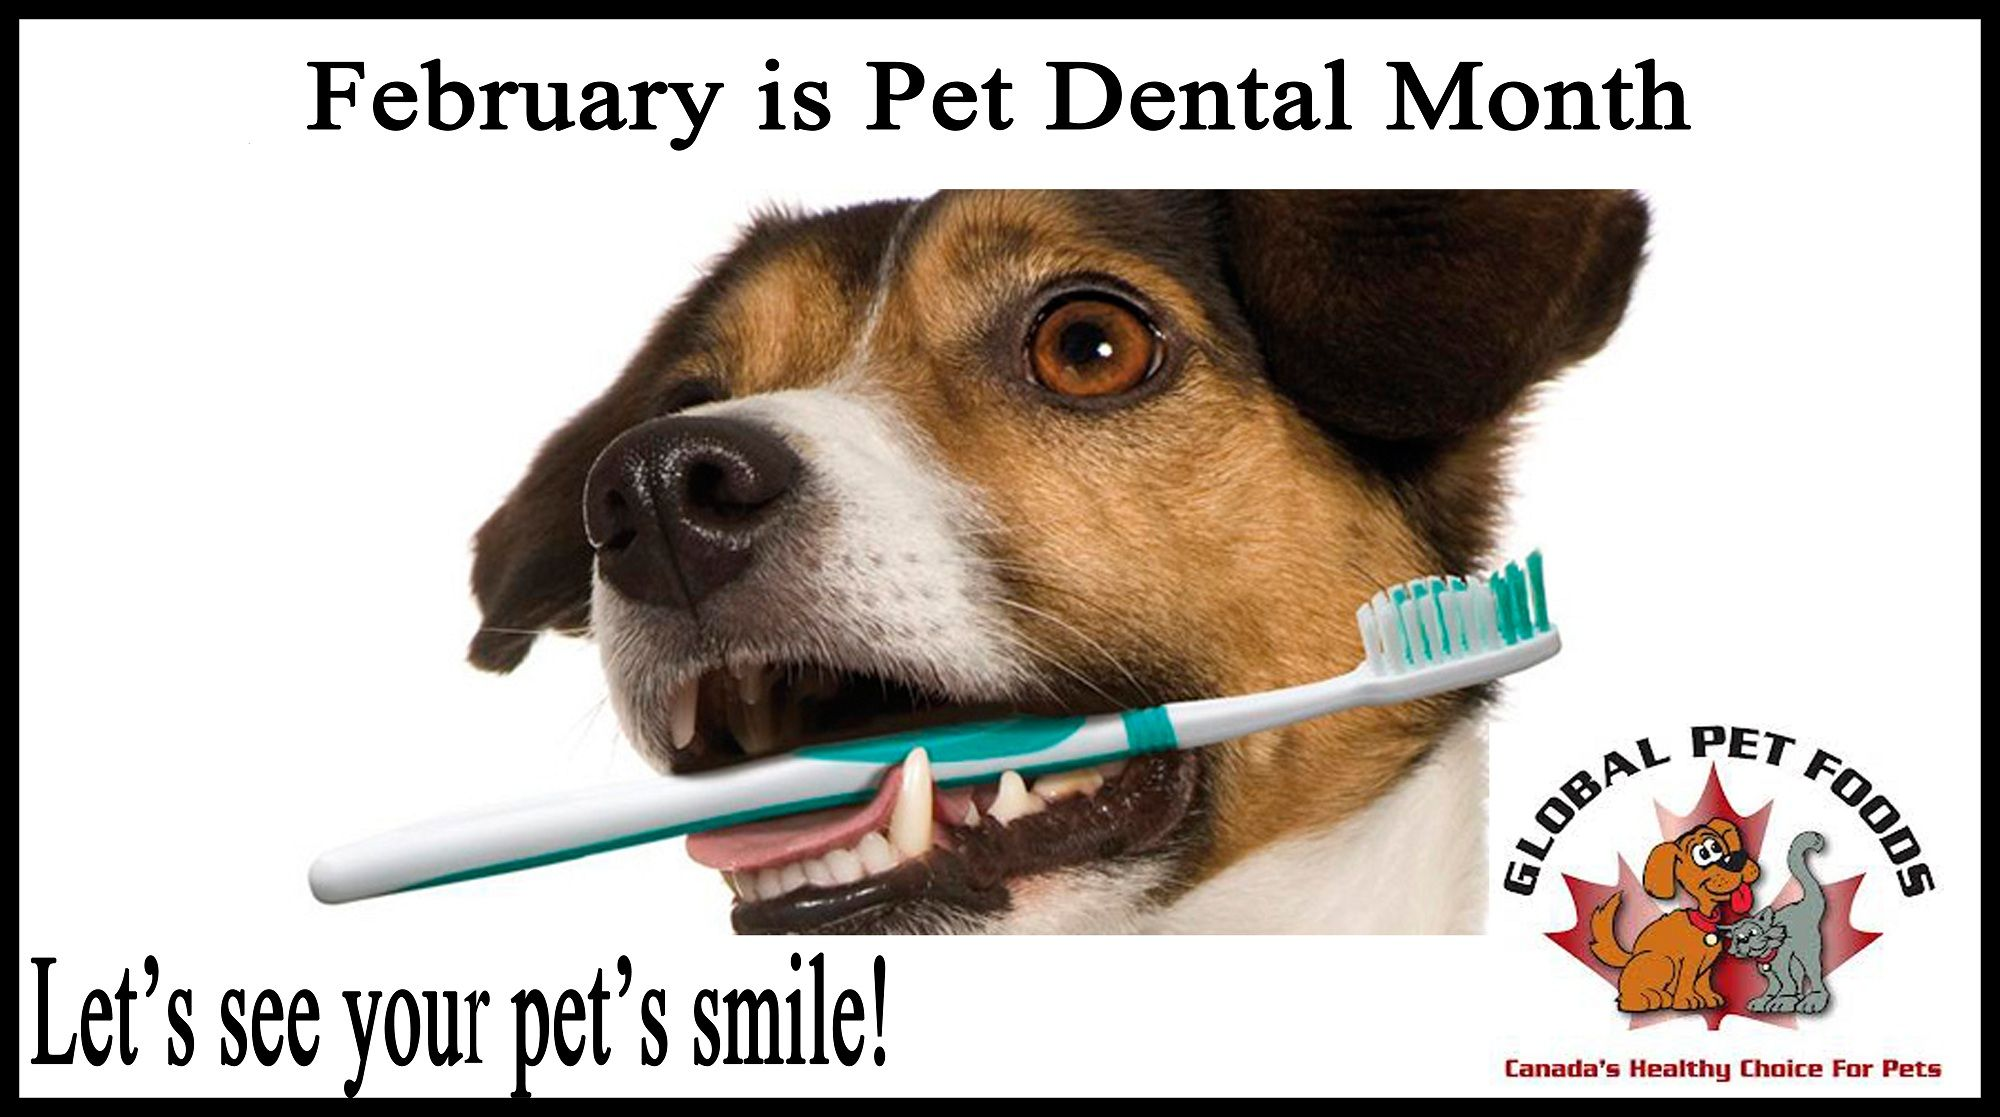 February is Pet Dental Month! Following a consistent